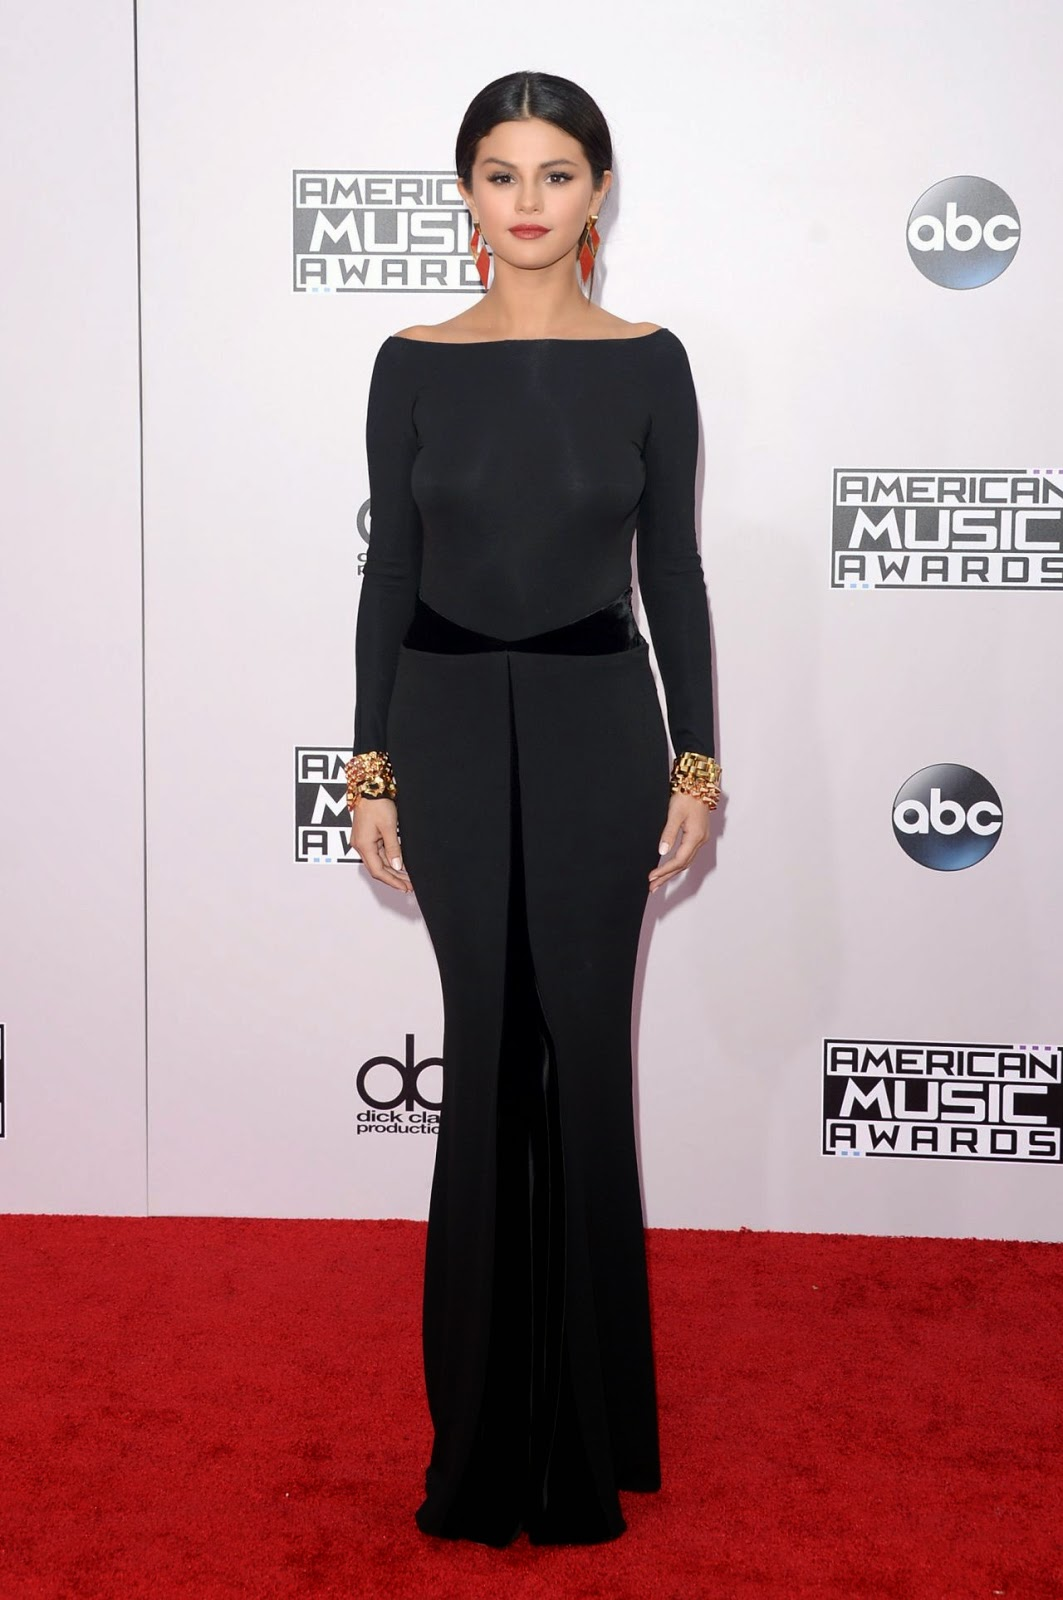 Selena Gomez arrives at the 2014 American Music Awards in a backless Armani Prive gown